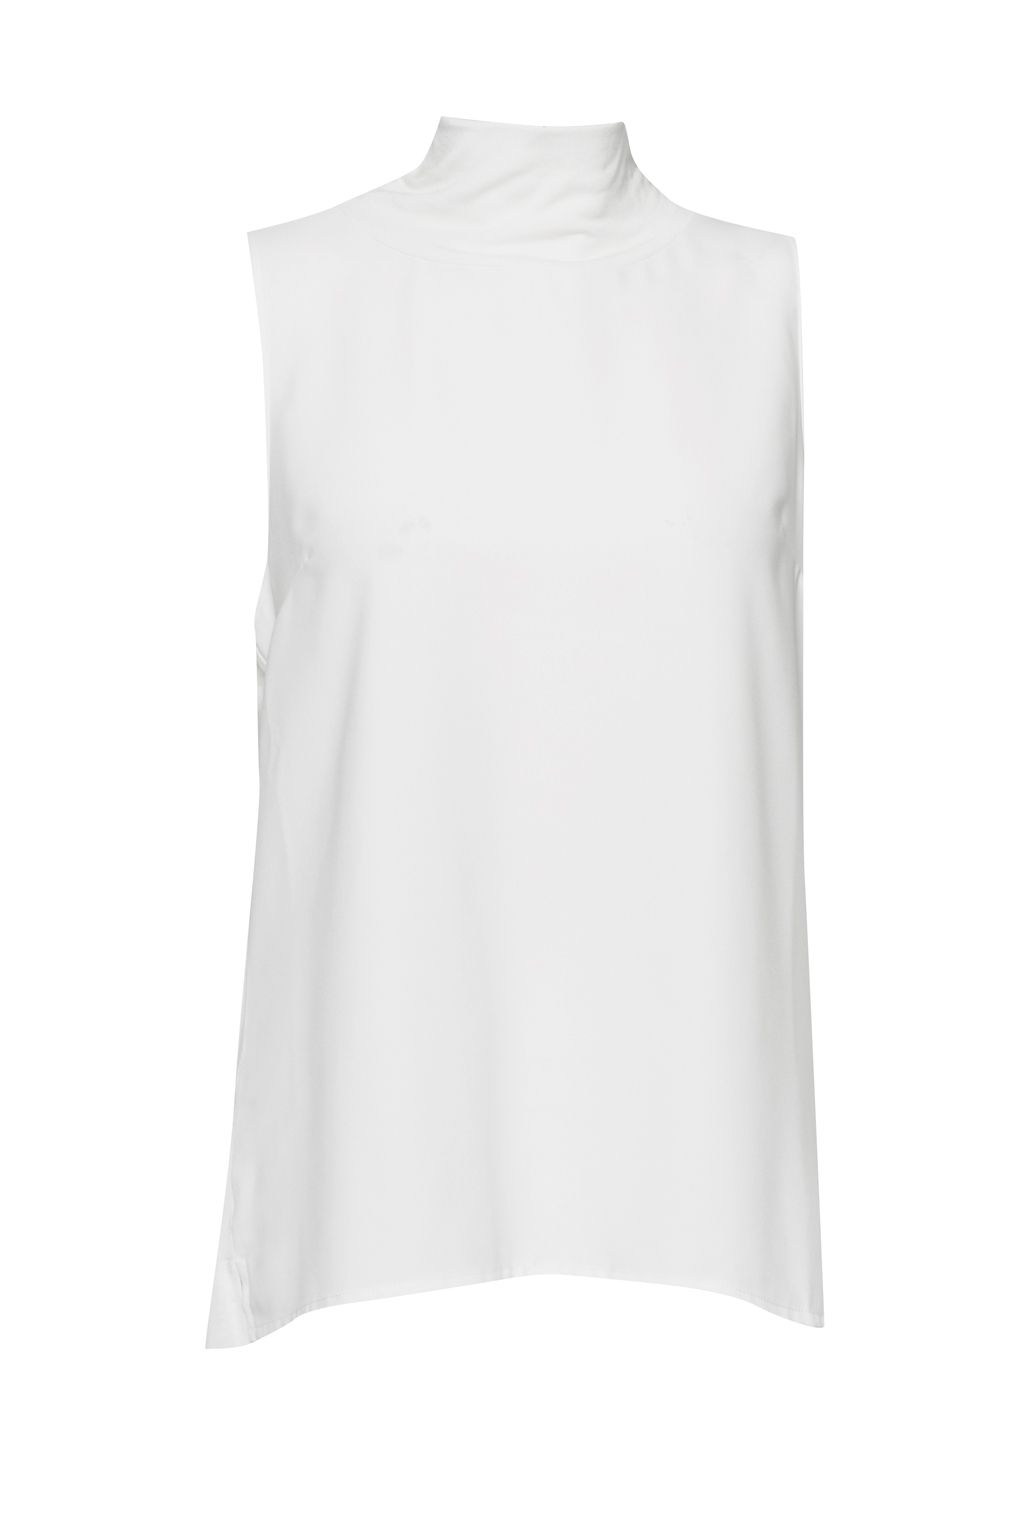 French Connection Crepe Light Mock Neck Top, Winter White